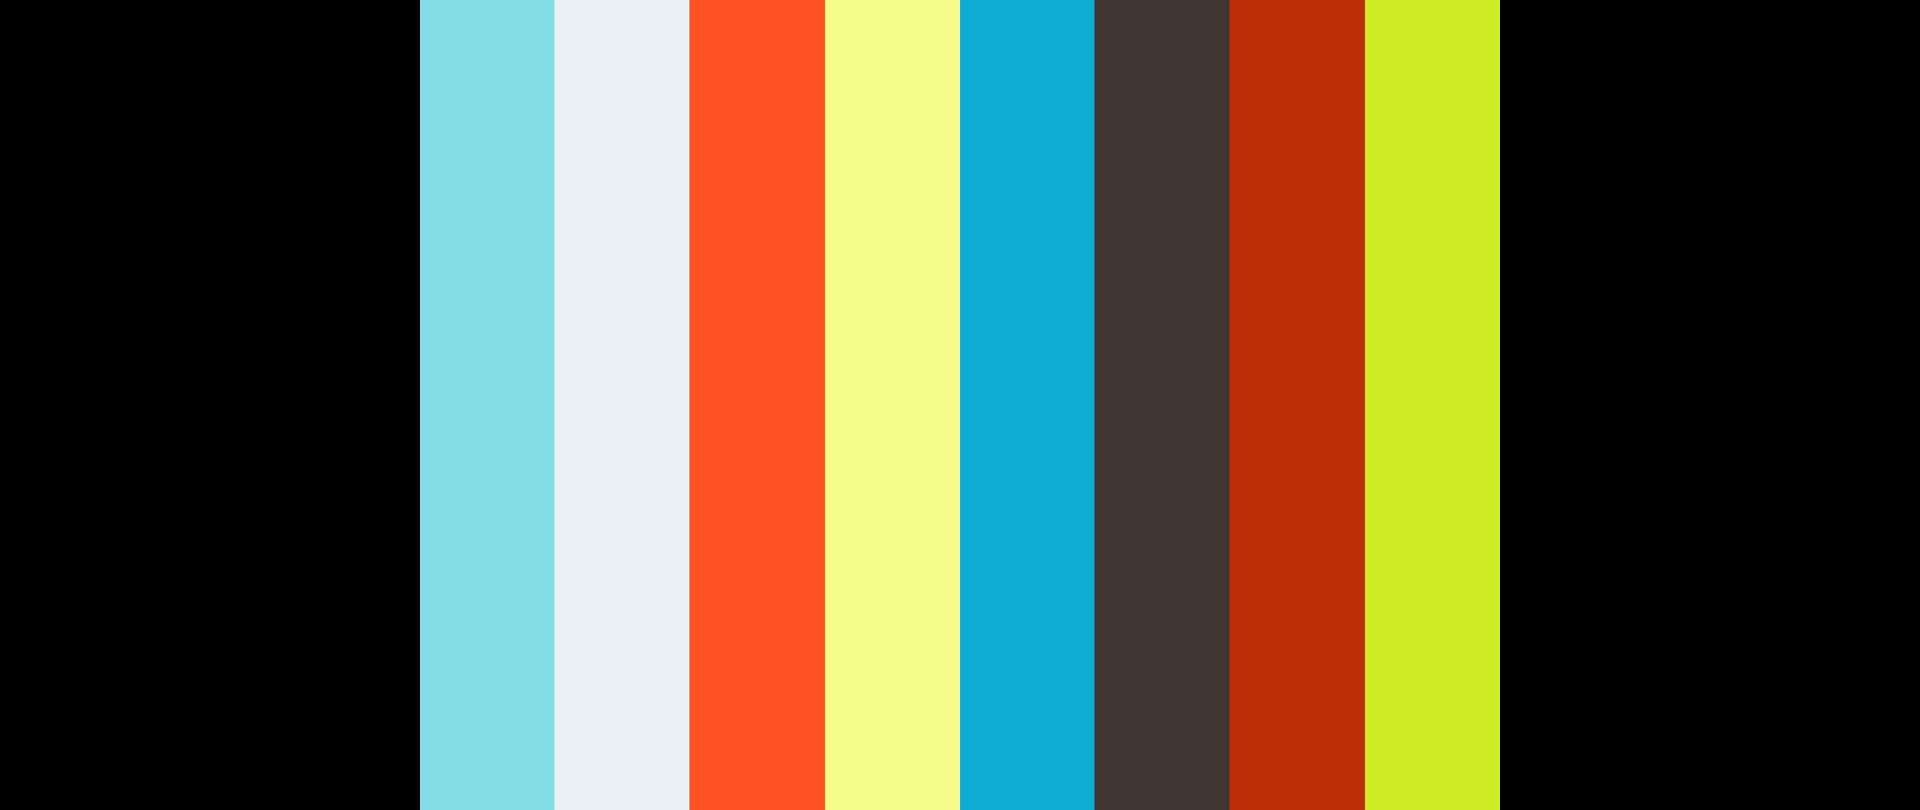 Victoria & Alex Wedding Video Filmed at Tuscany, Italy